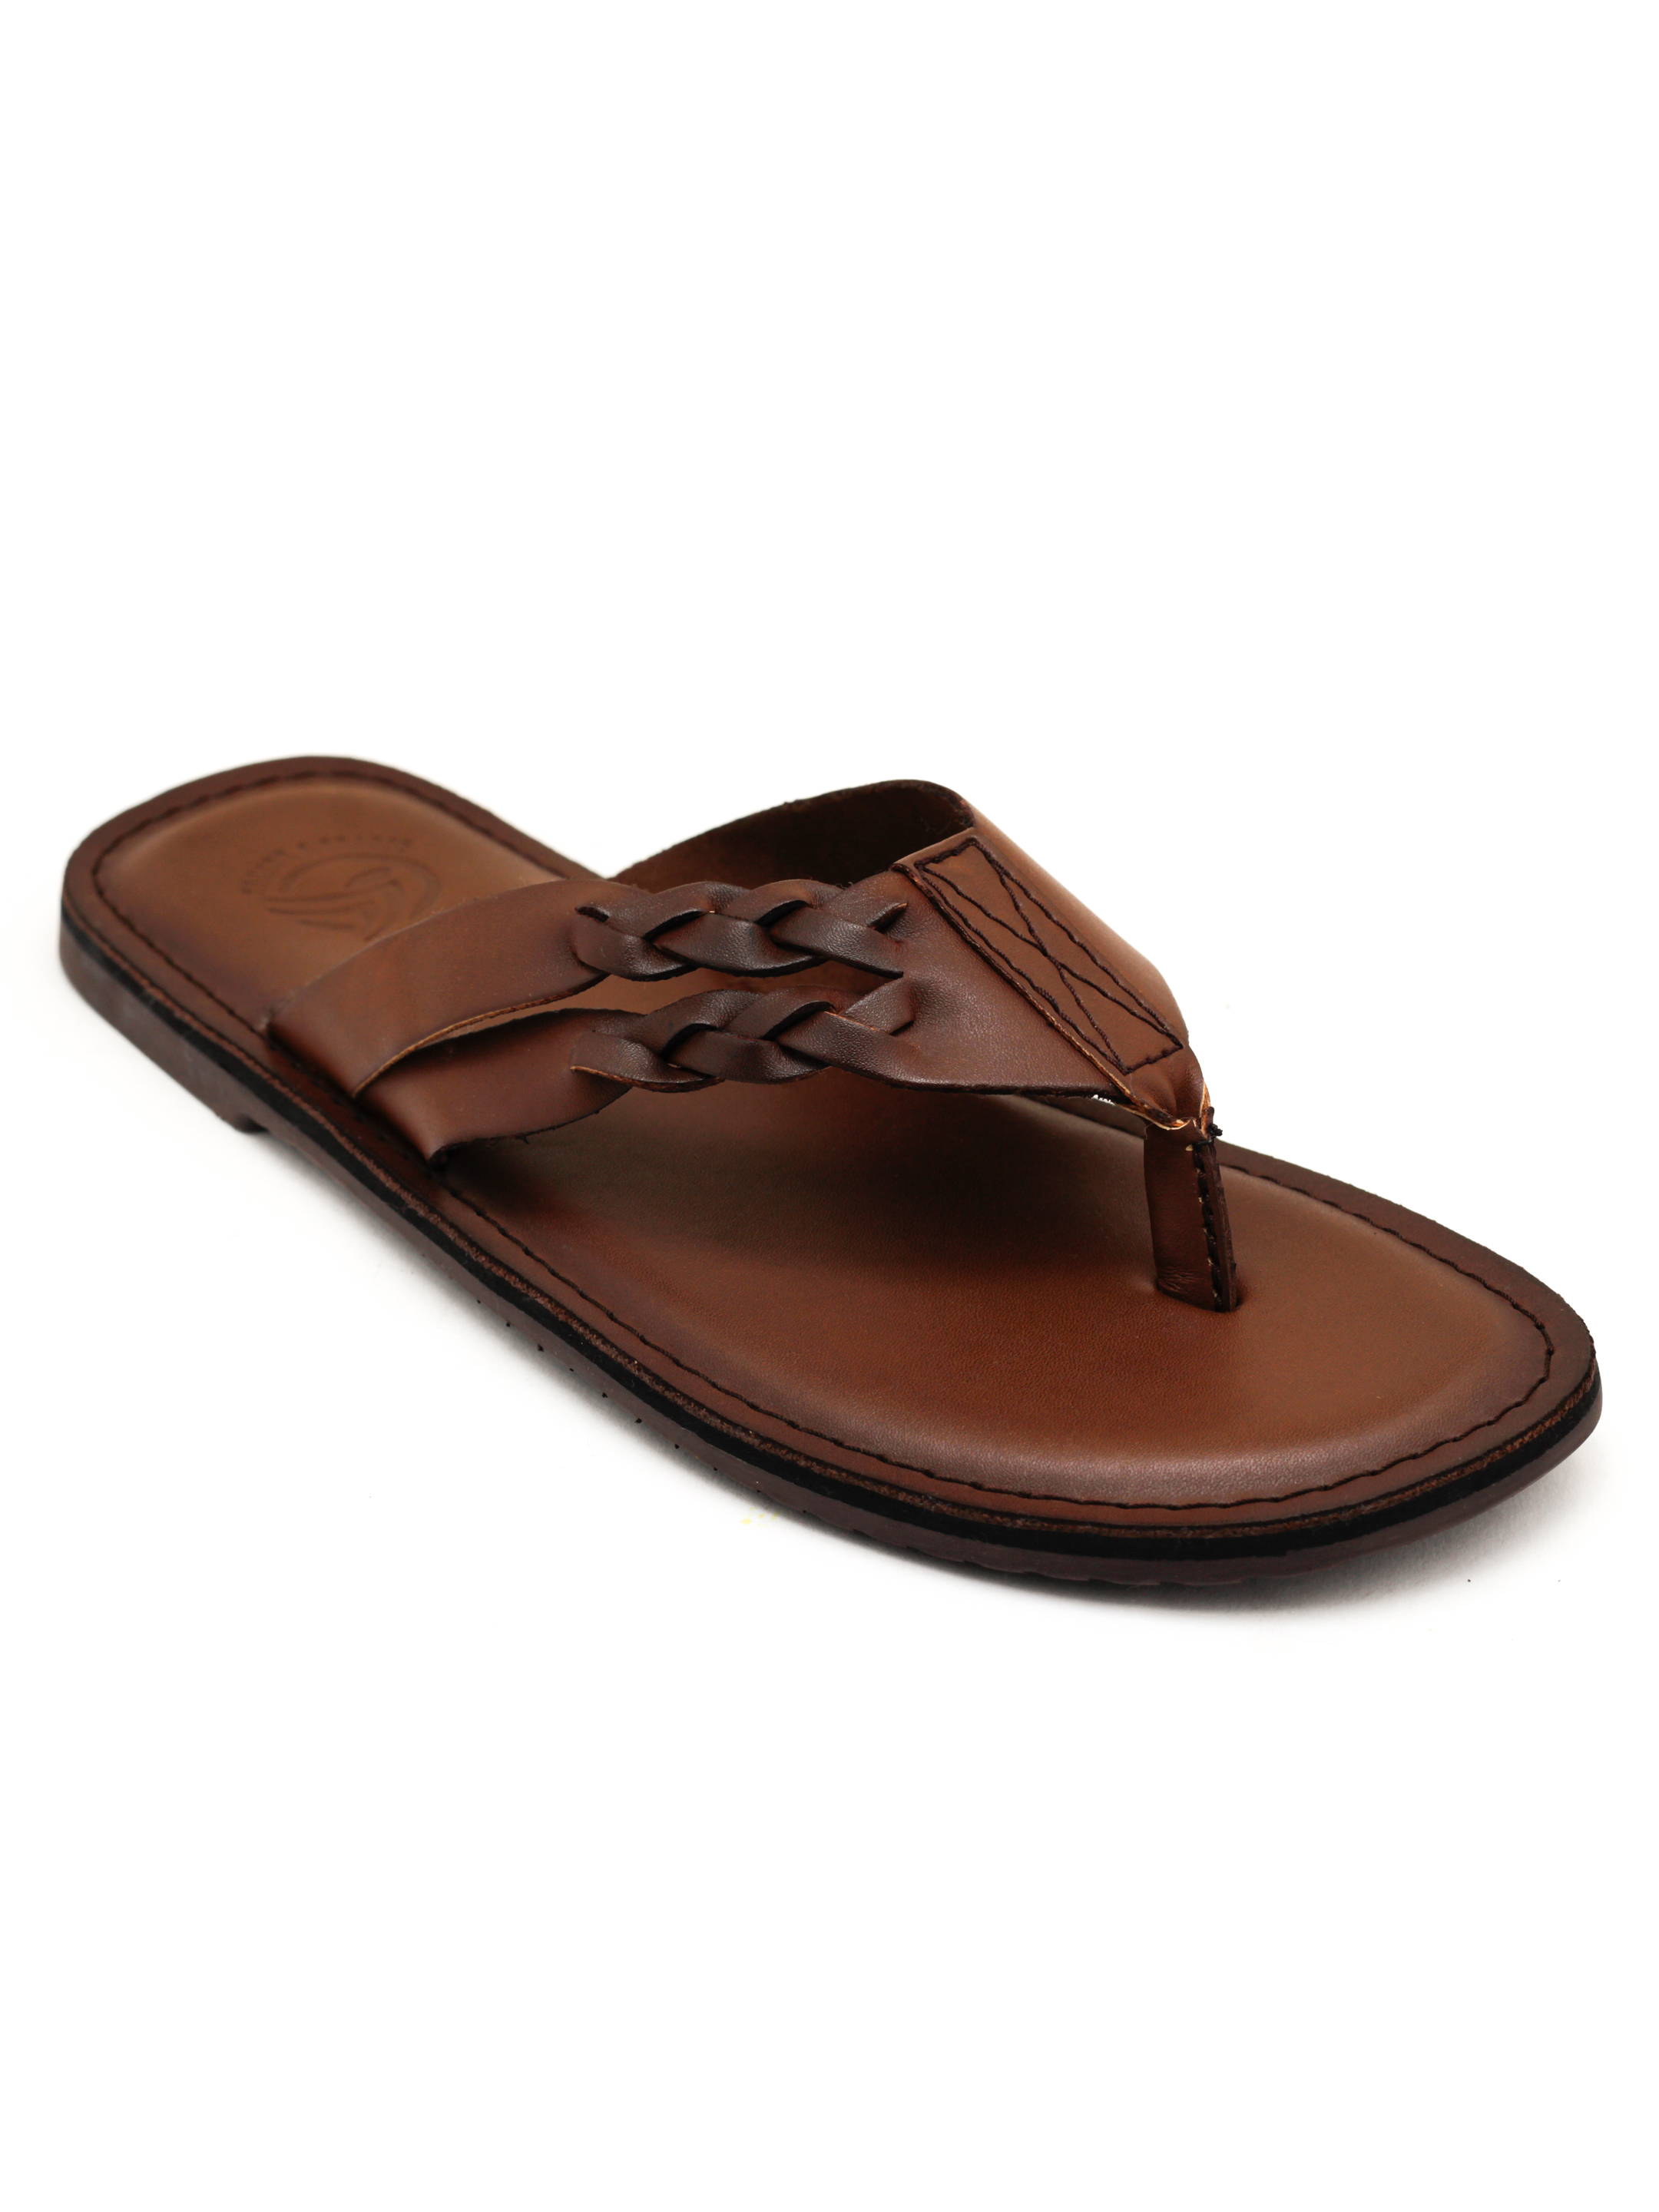 Trends & Trades | Mens Brown Thong Sandals